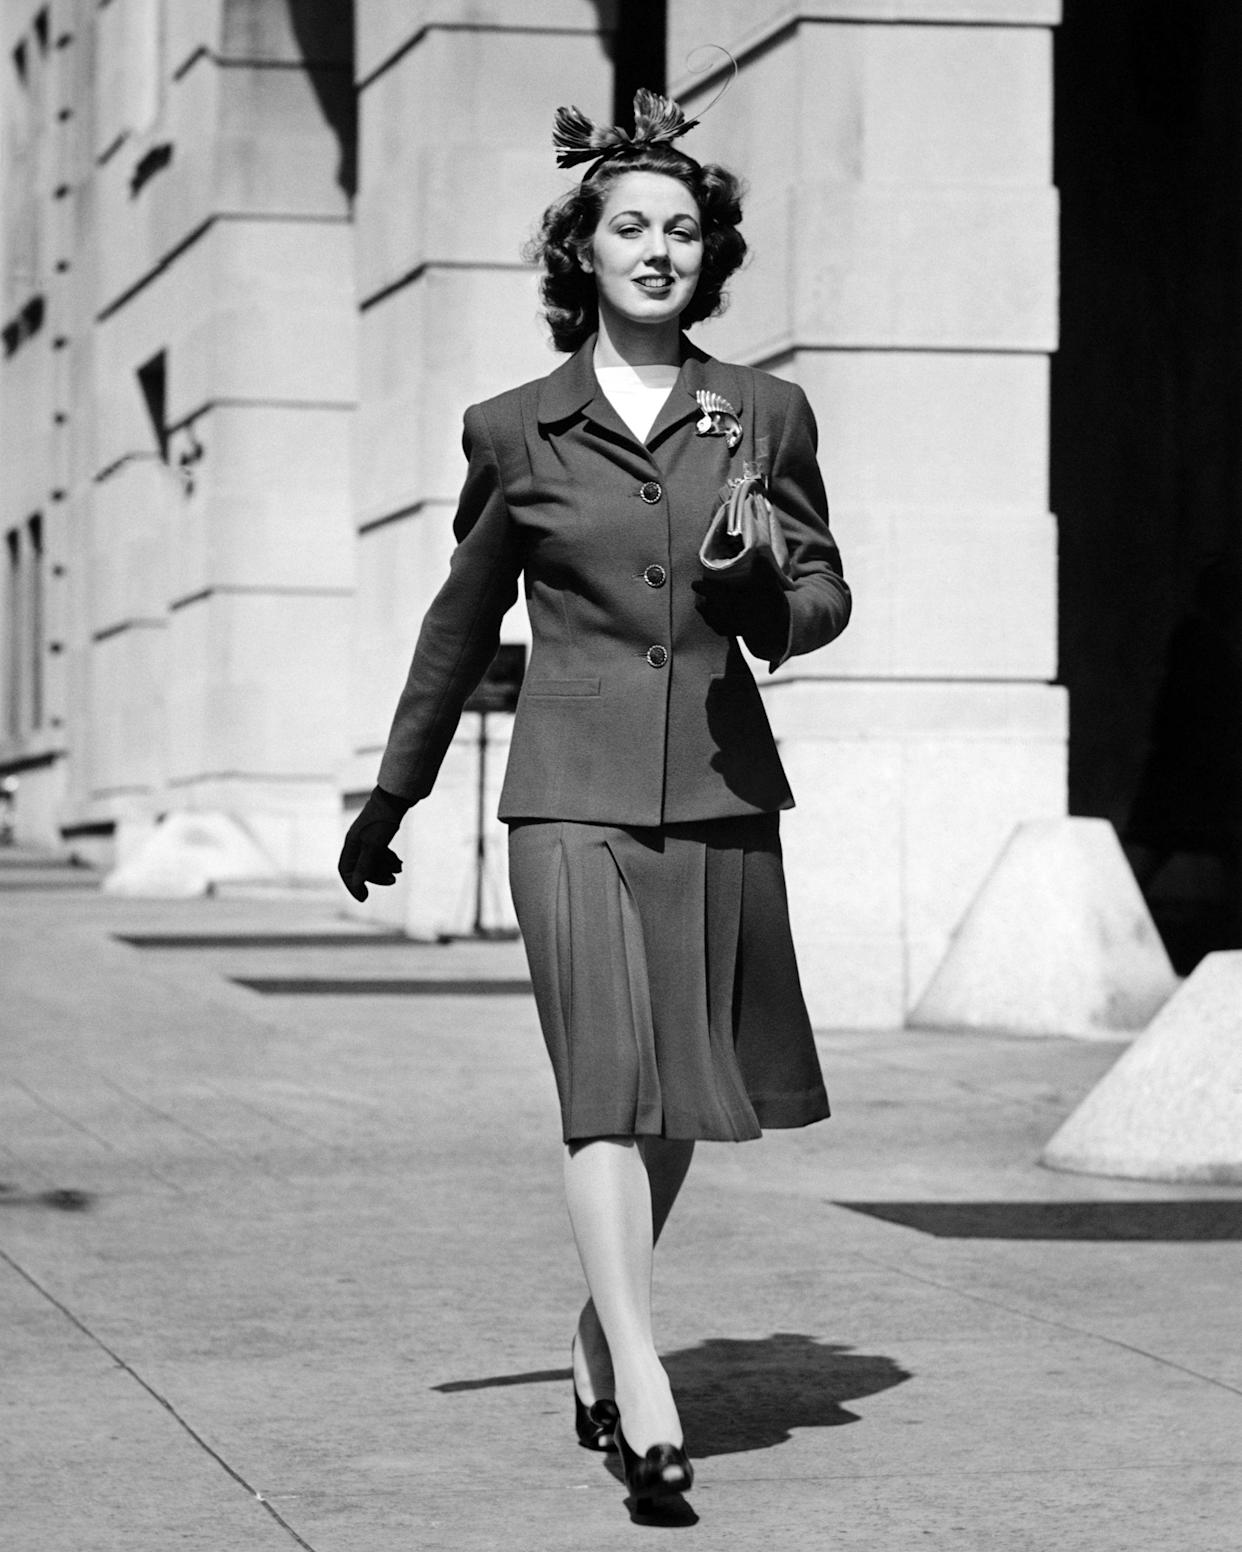 1930s woman wearing a suit with shoulder pads